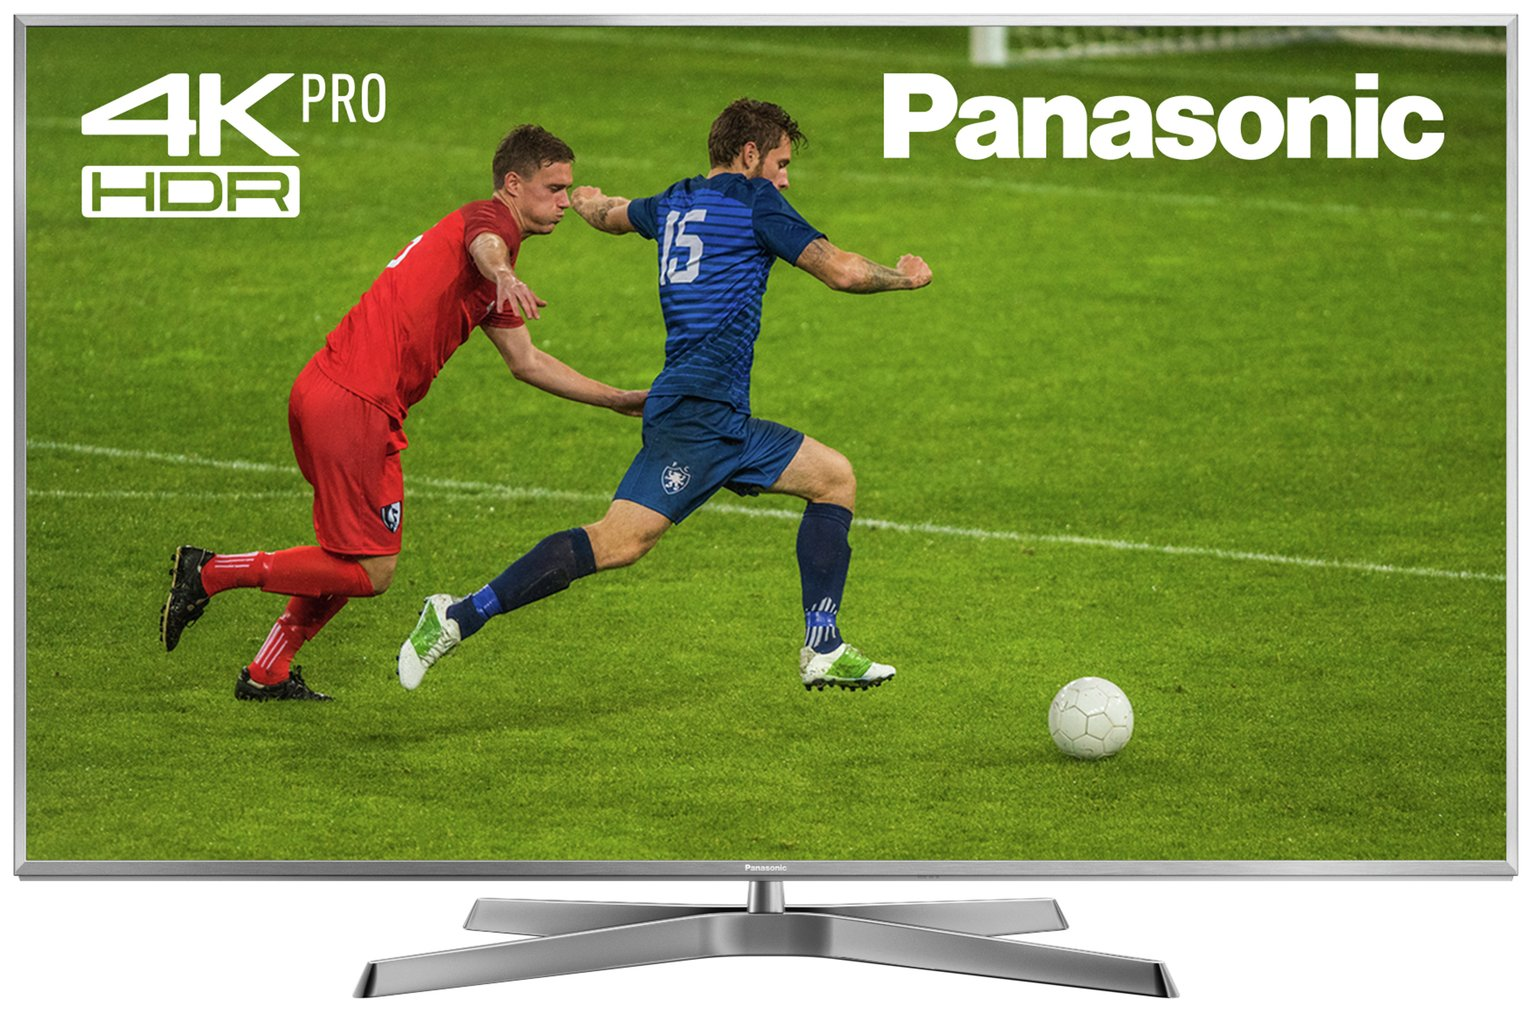 panasonic-tx-65ex750b-65-inch-4k-ultra-hd-smart-tv